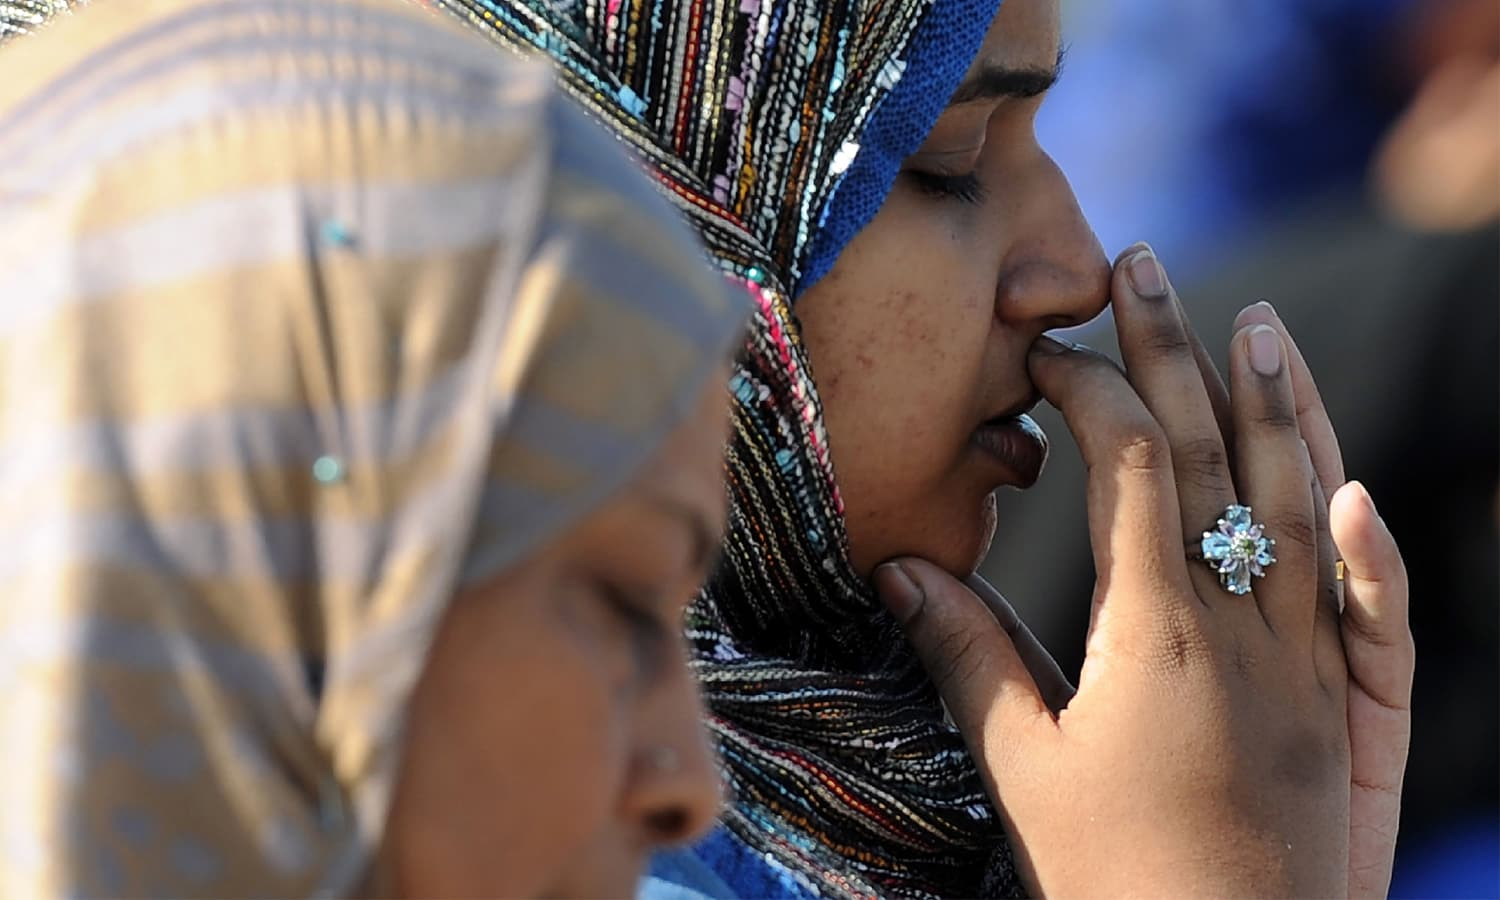 Worshippers pray during Eidul Azha celebrations at the Galle Face esplanade in Colombo, Sri Lanka.—AFP